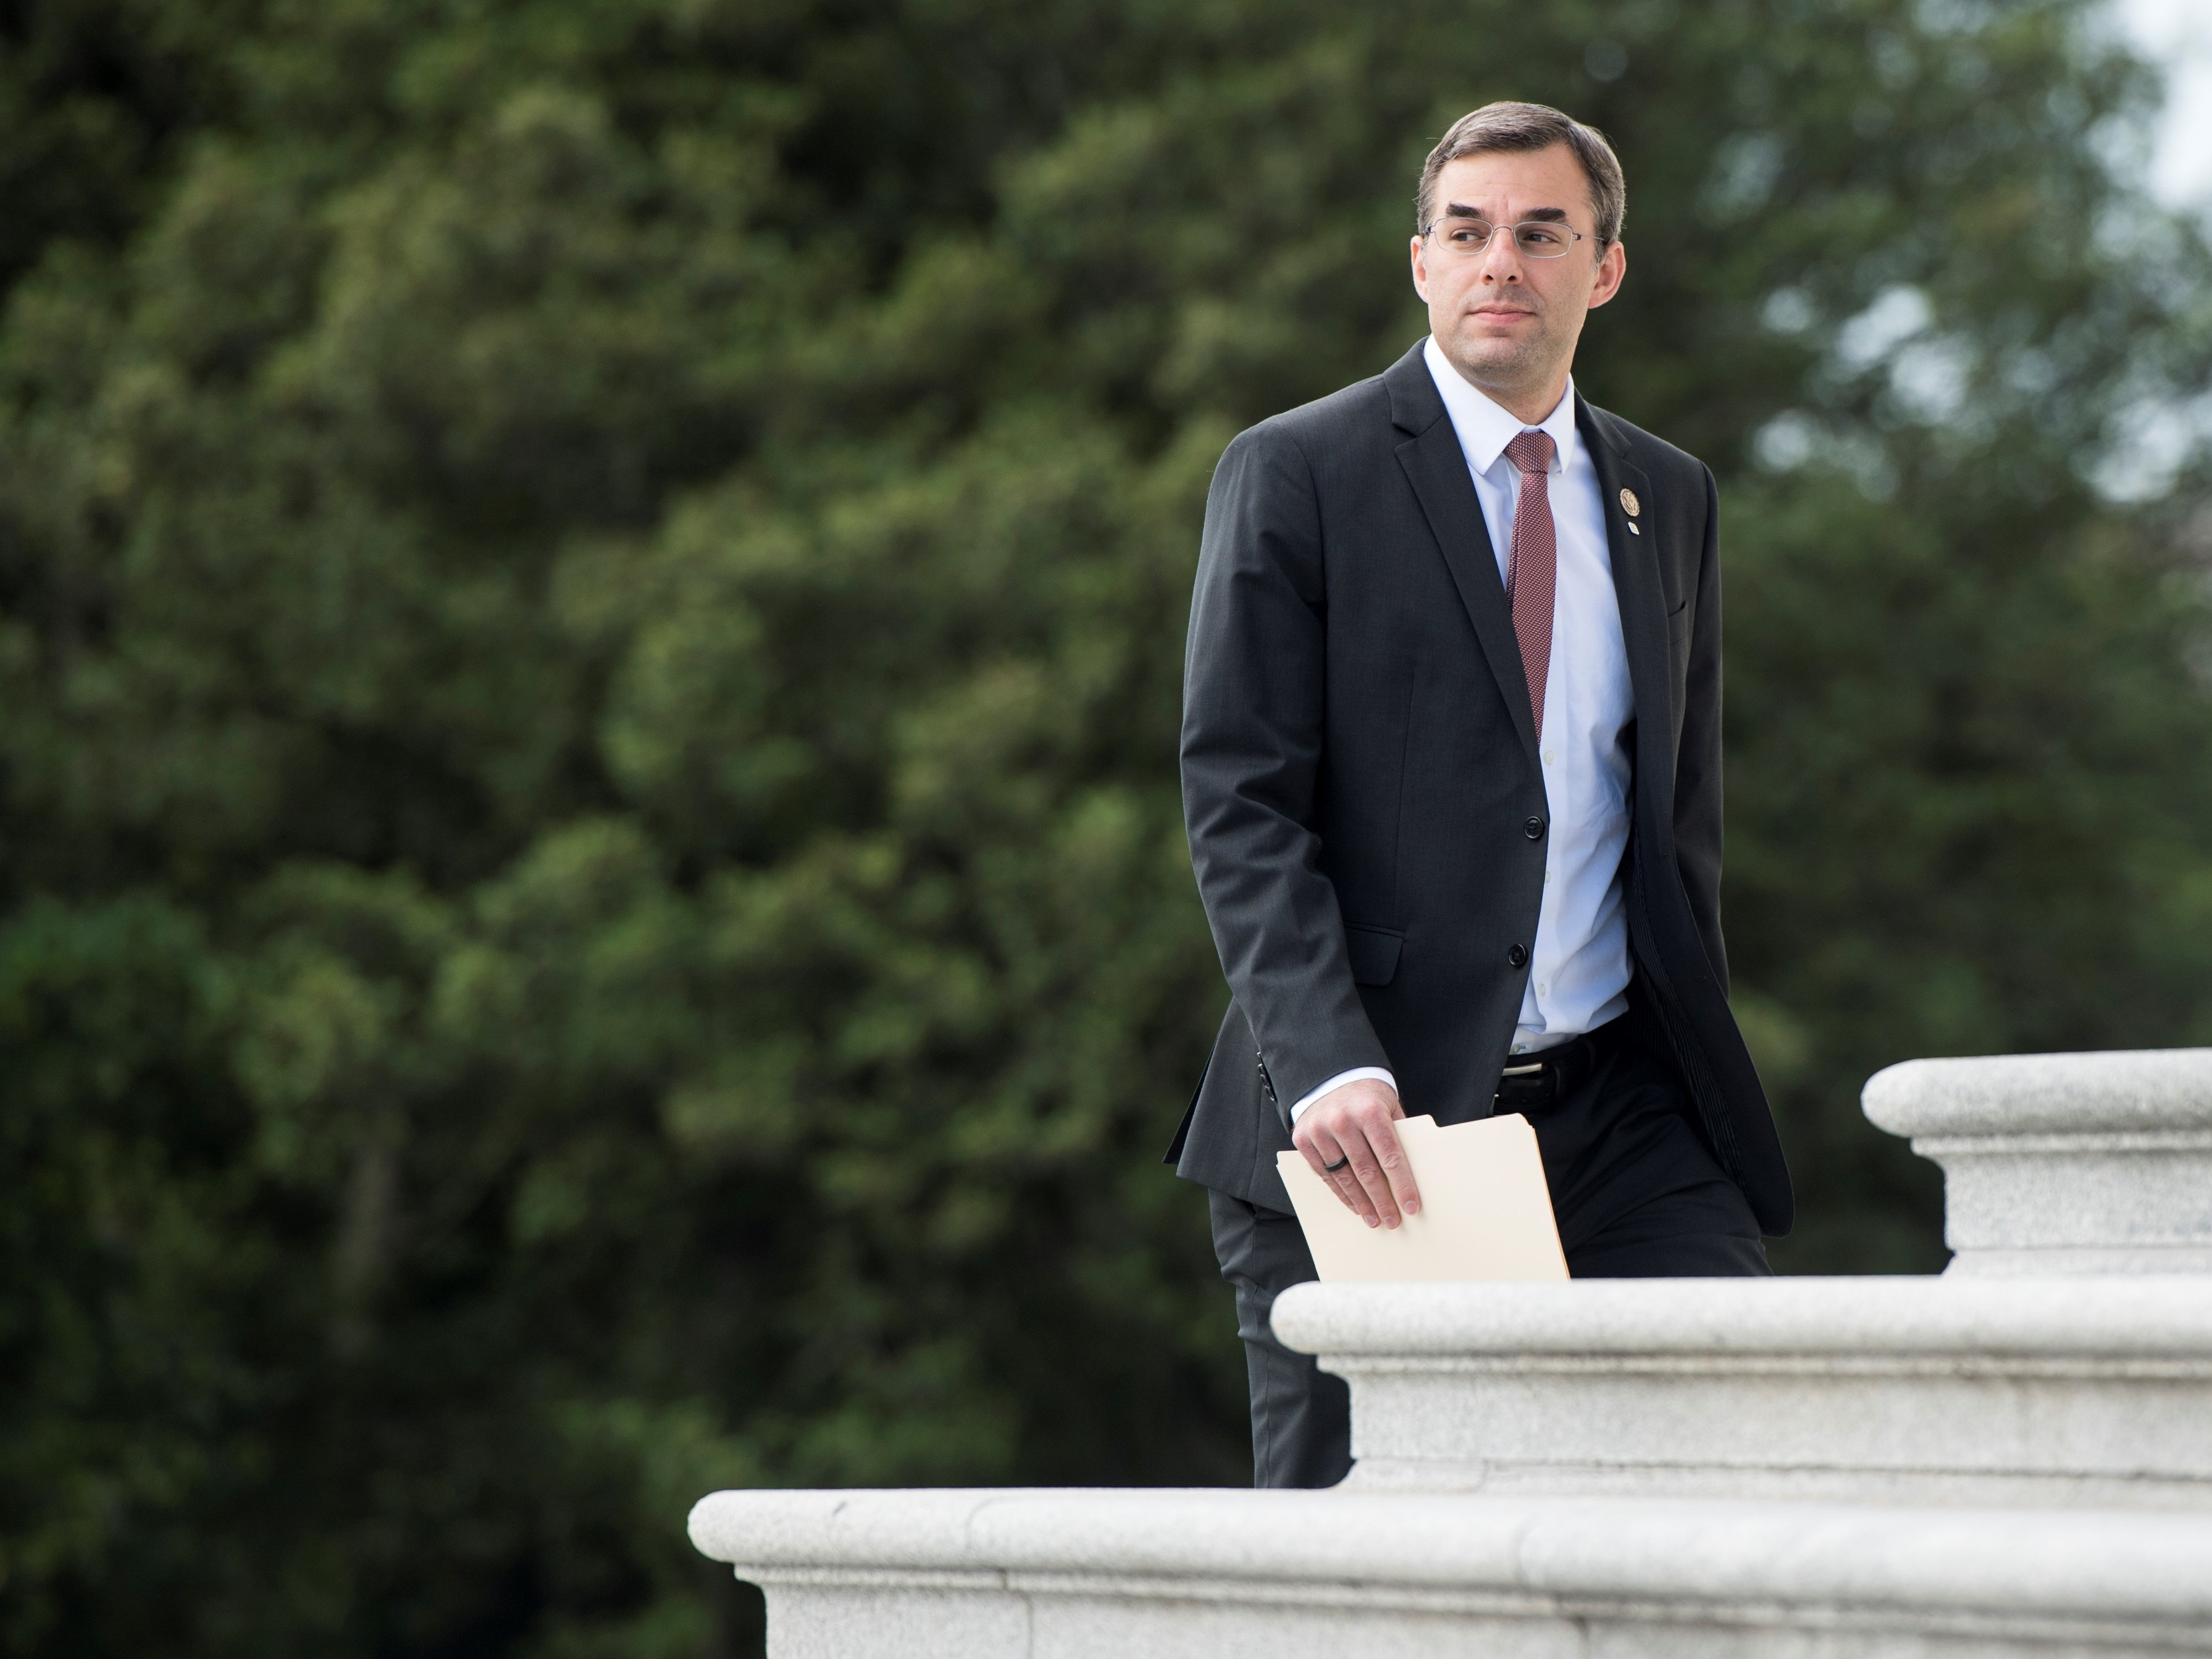 Who Is Justin Amash And Why Is He Willing To Go Against His Own Party?